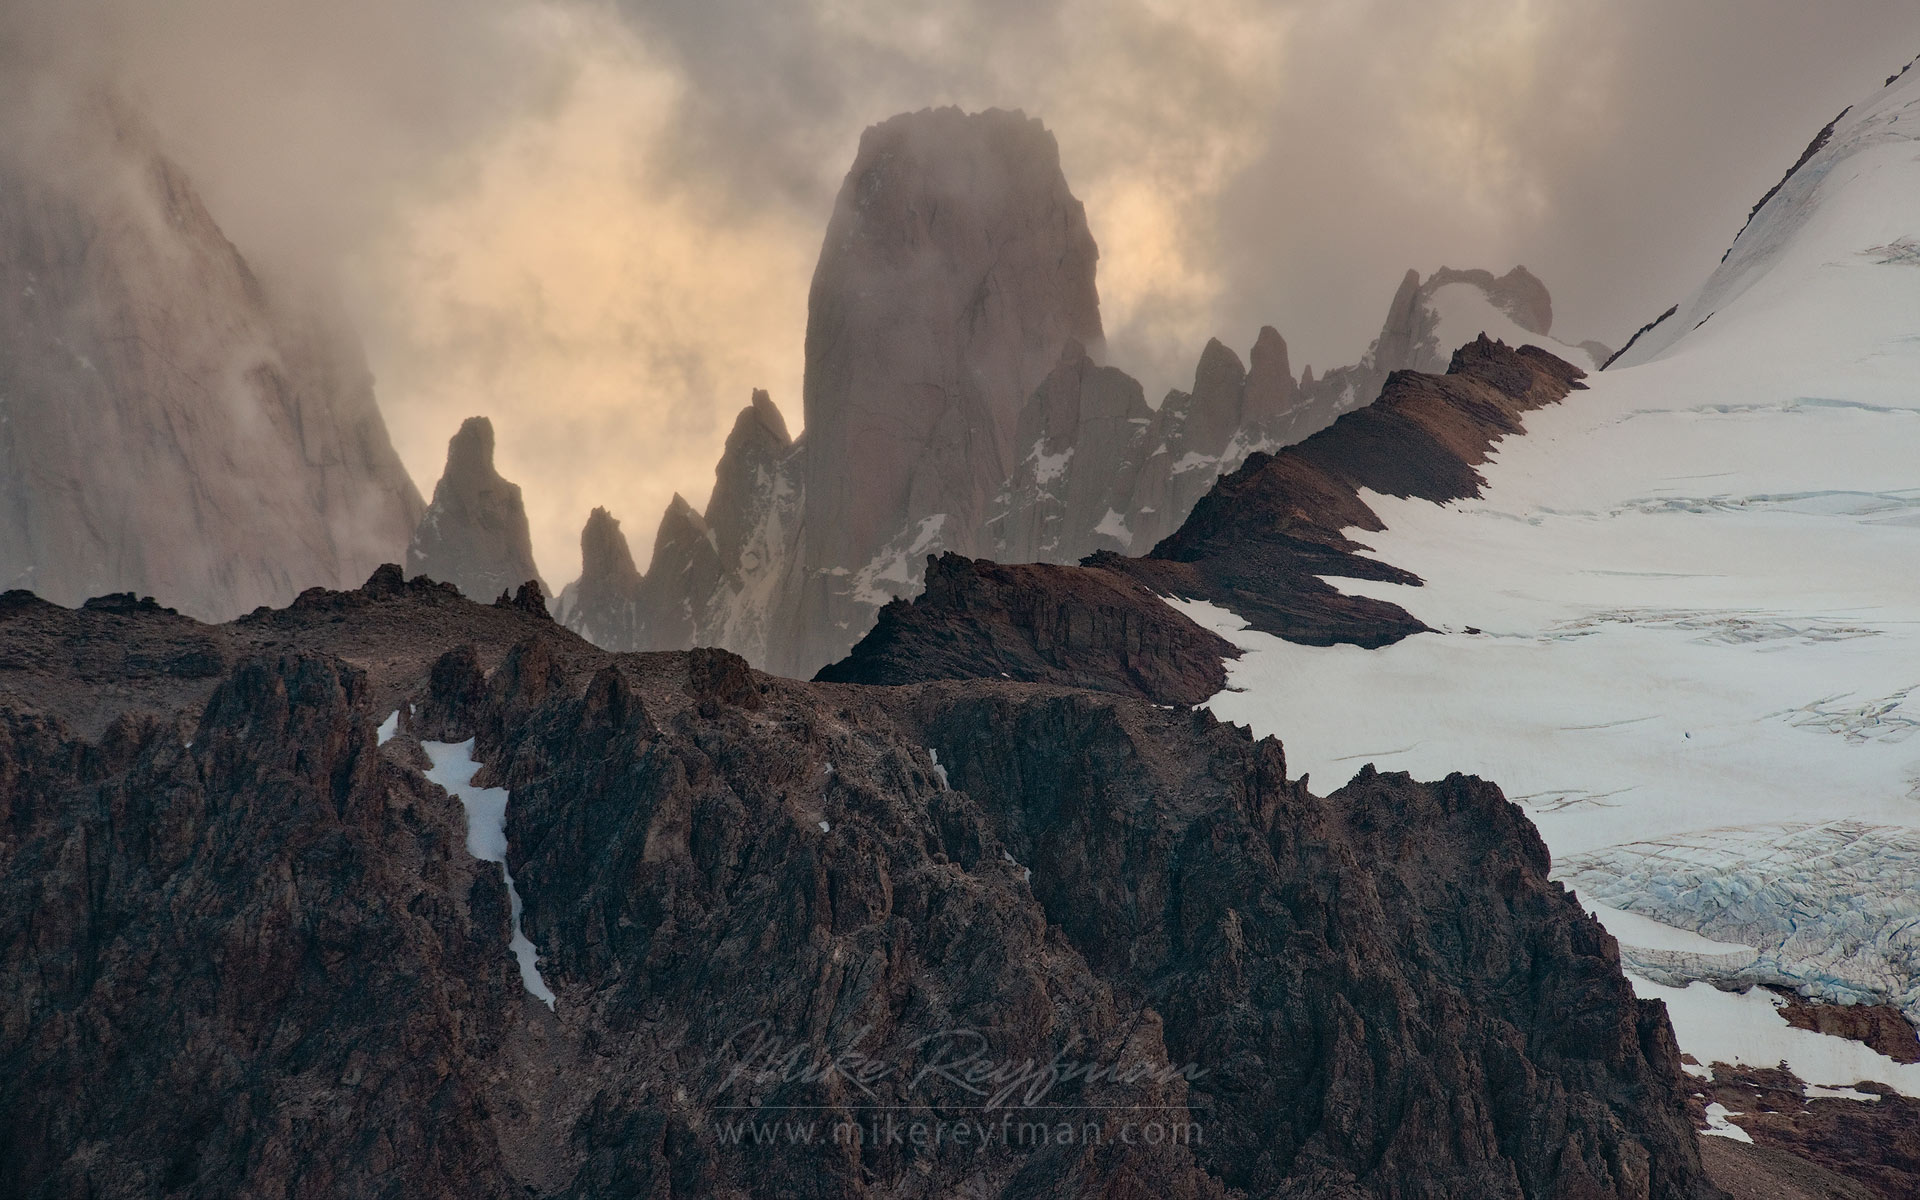 Another windy day in Cordilleras. The ridge between Mermoz and Fitzroy. Patagonian Andes, Santa Cruz, Argentina. - Fitzroy-Cerro-Torre-Perito-Moreno-Patagonia-Argentina - Mike Reyfman Photography